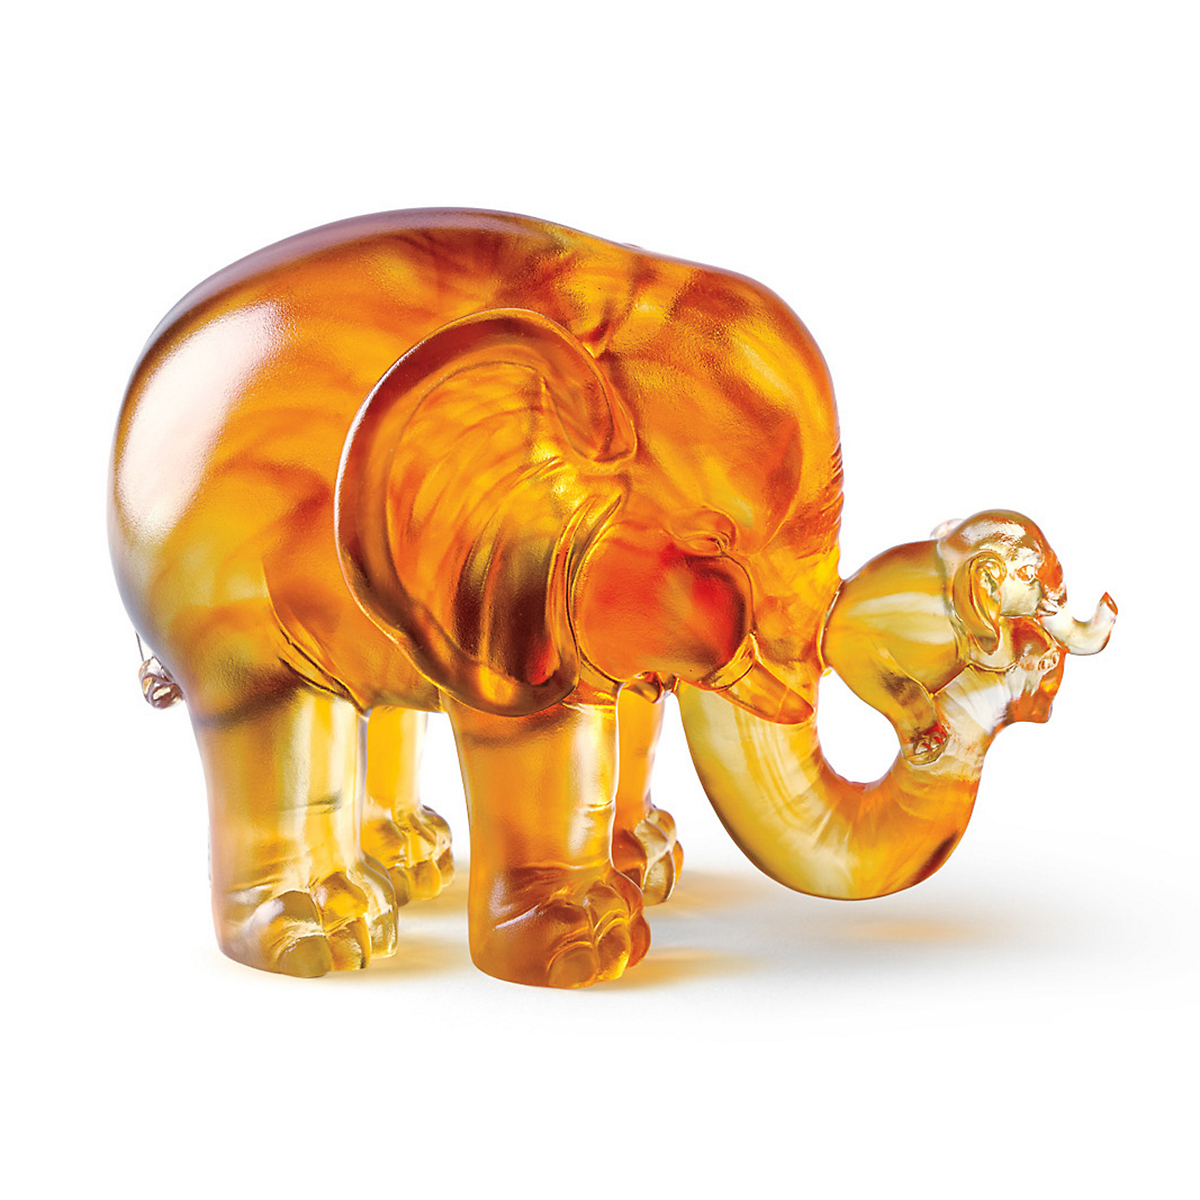 Liuli 'A Push Forward' Elephant